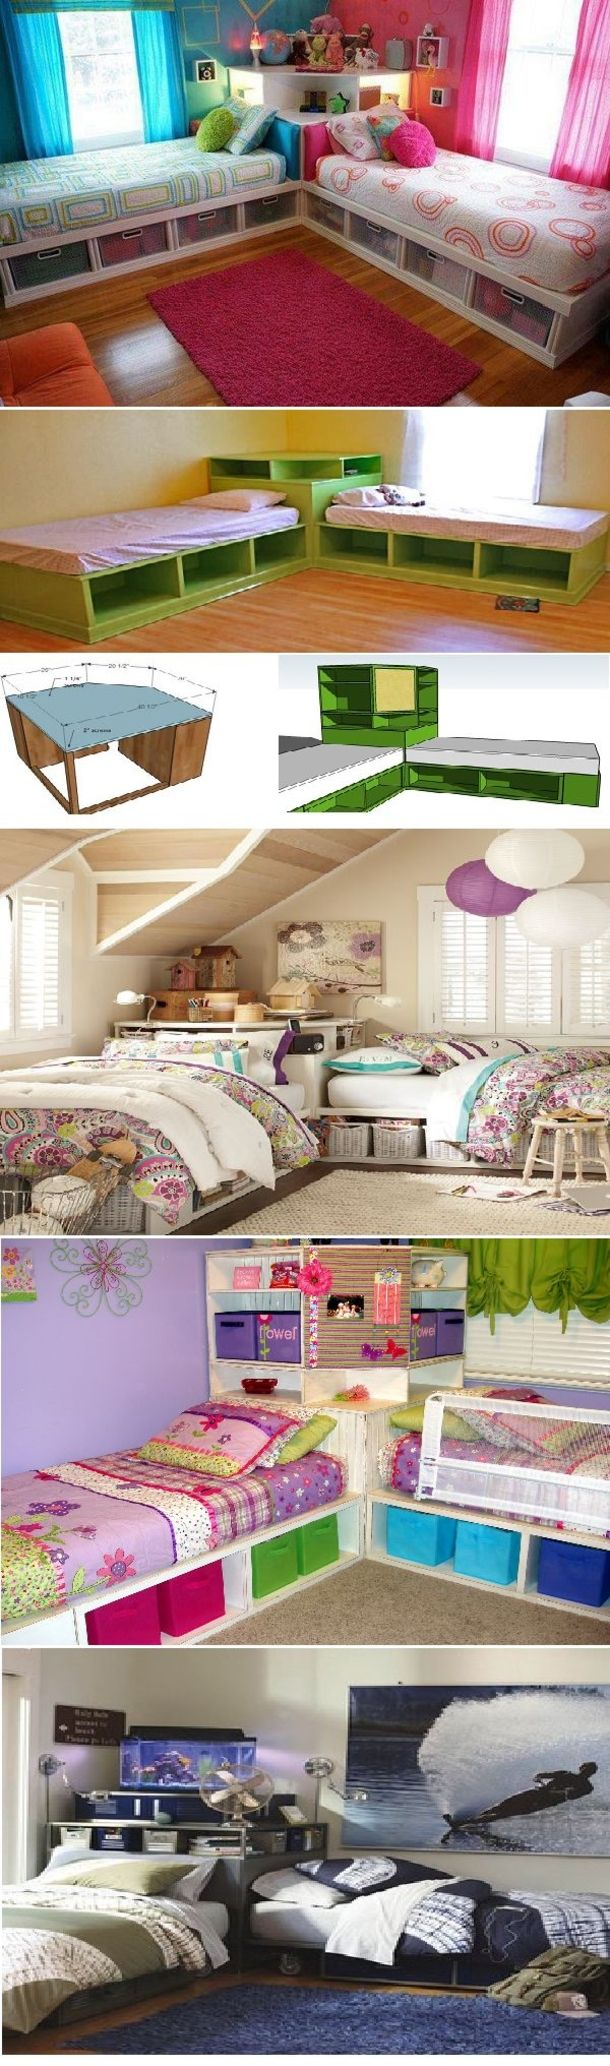 Best 25+ Kids room organization ideas on Pinterest | Organize ...